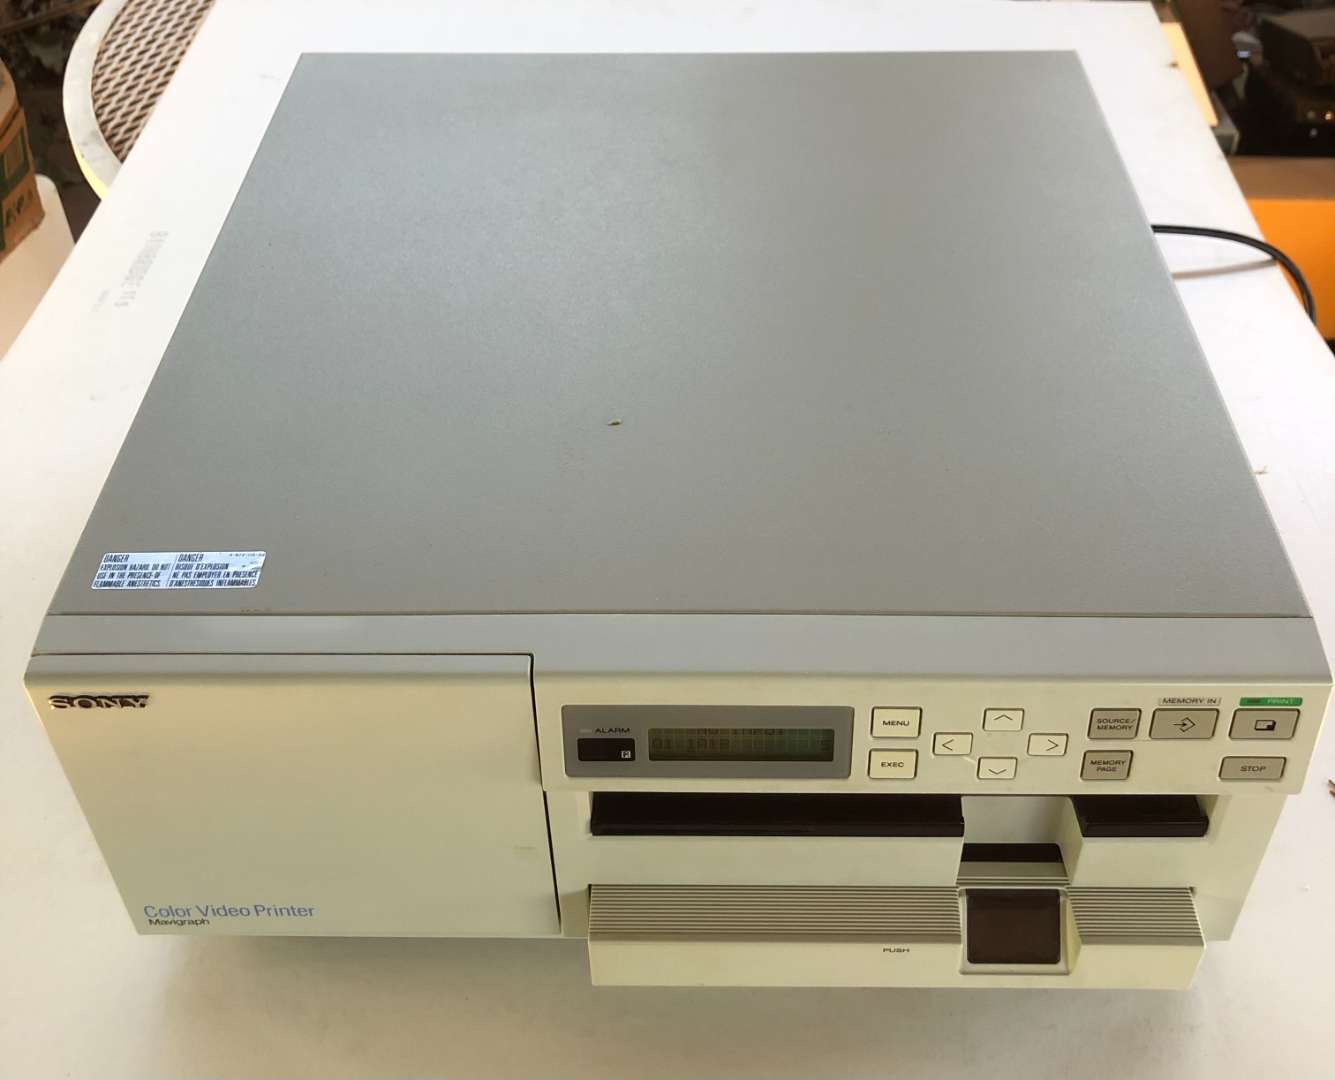 Lot # 160 - 2 Sony Video Printers UP5200